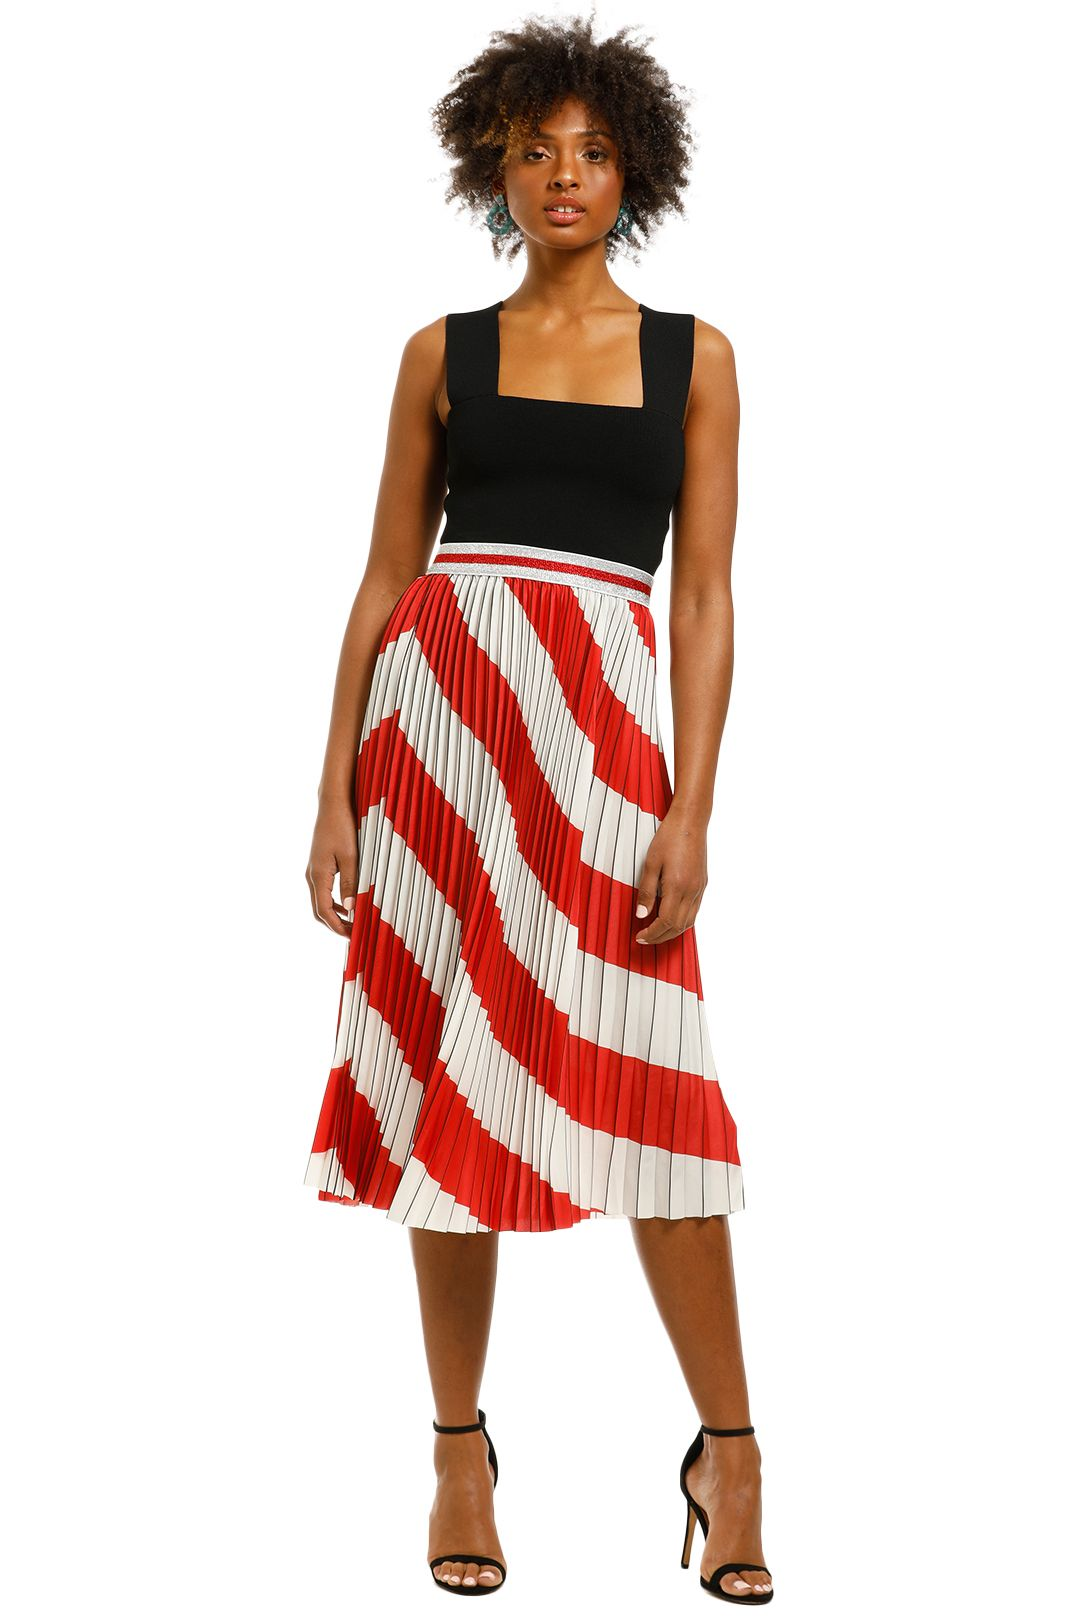 COOP-By-Trelise-Cooper-Spin-Me-Round-Skirt-Pink-White-Stripe-Front